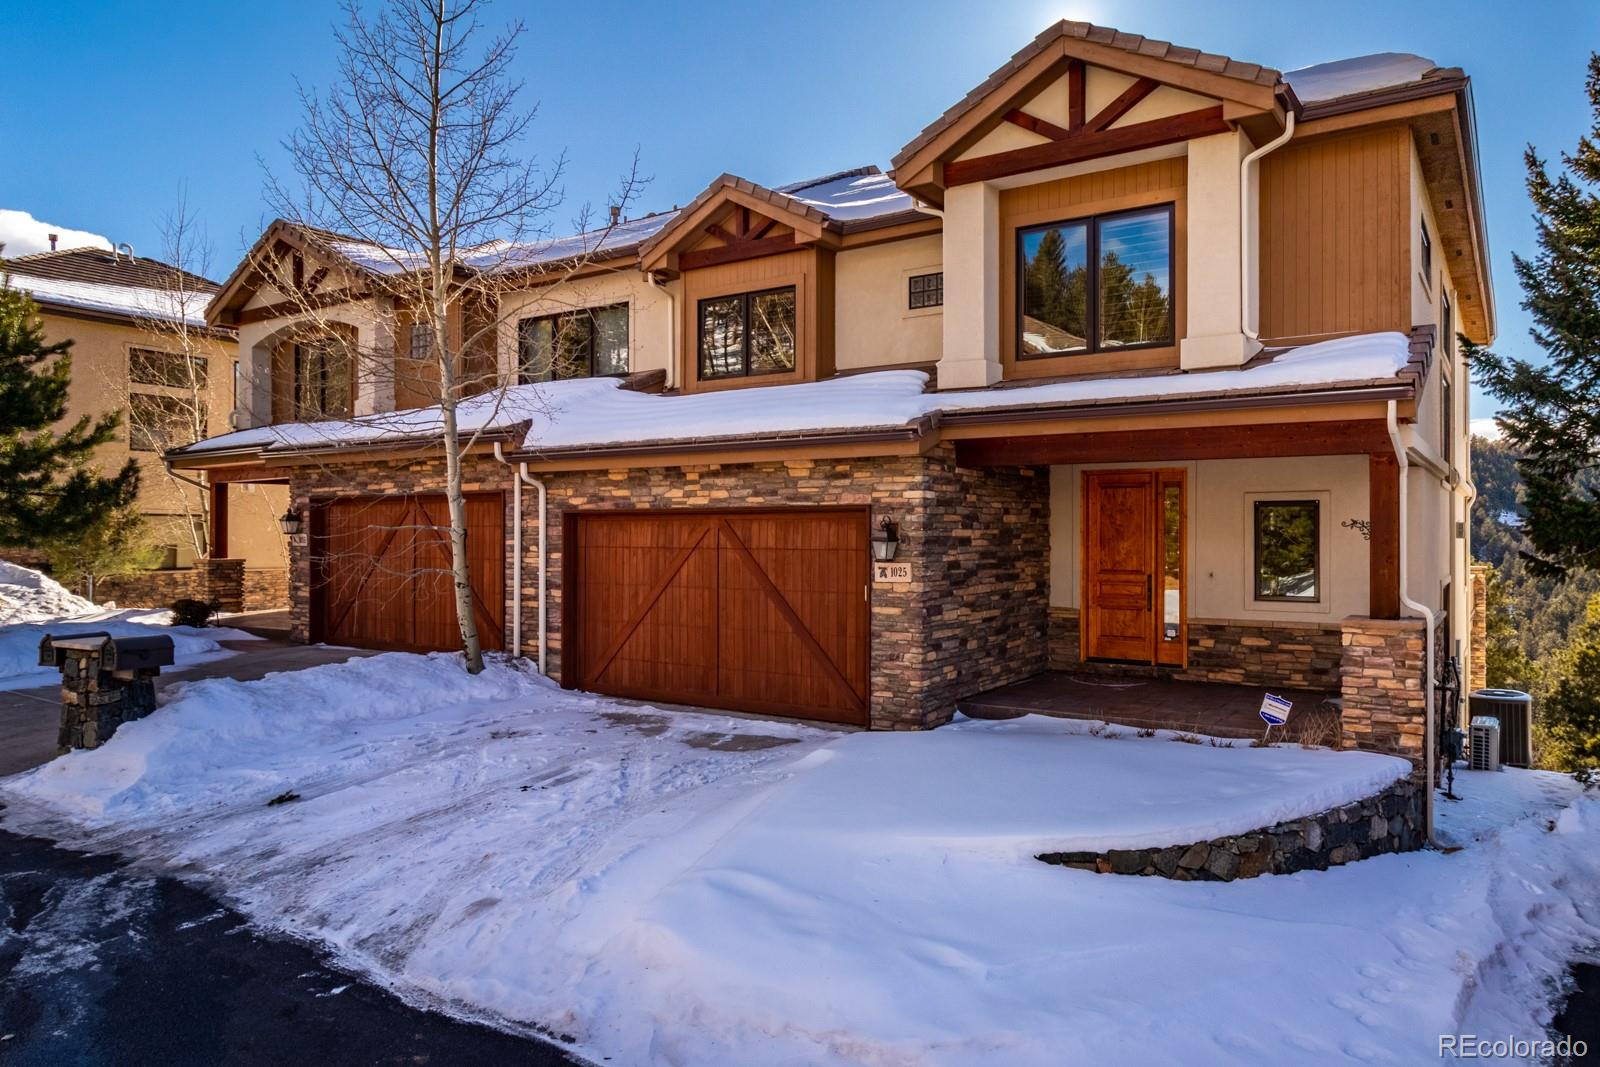 1025 Nob Hill Road, Evergreen, CO 80439 - Evergreen, CO real estate listing